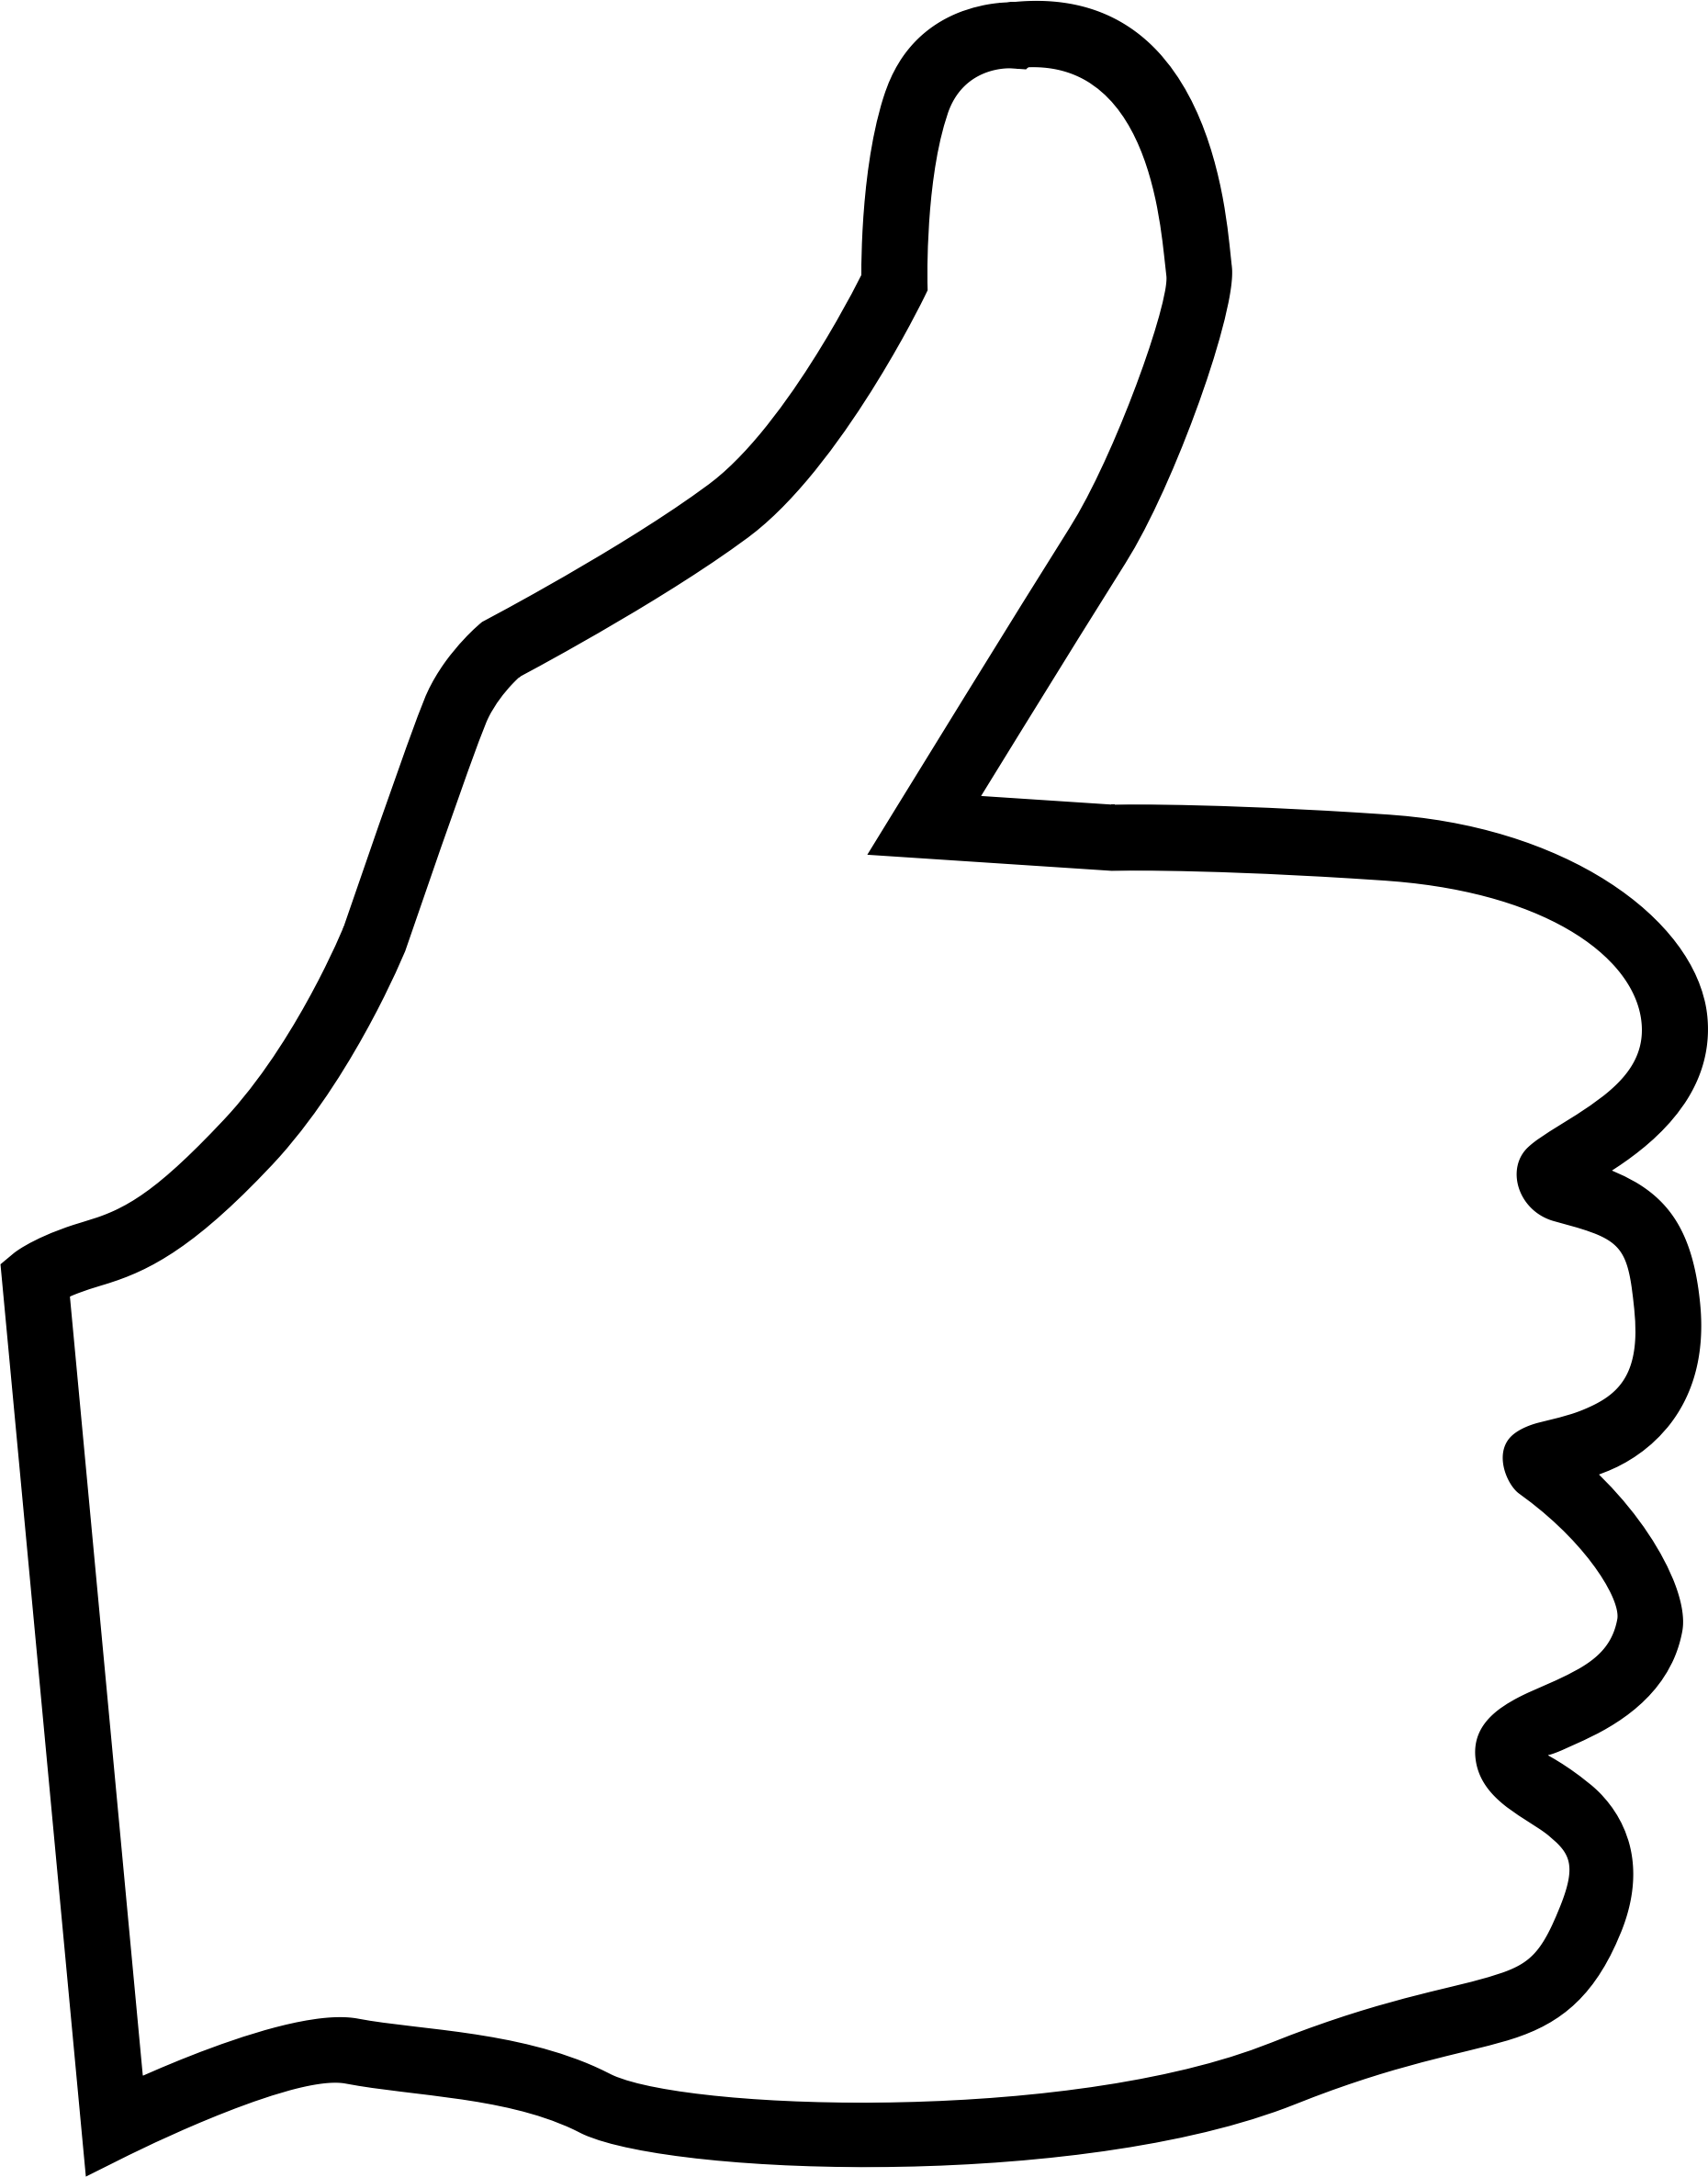 Free Thumbs Up, Download Free Clip Art, Free Clip Art on.